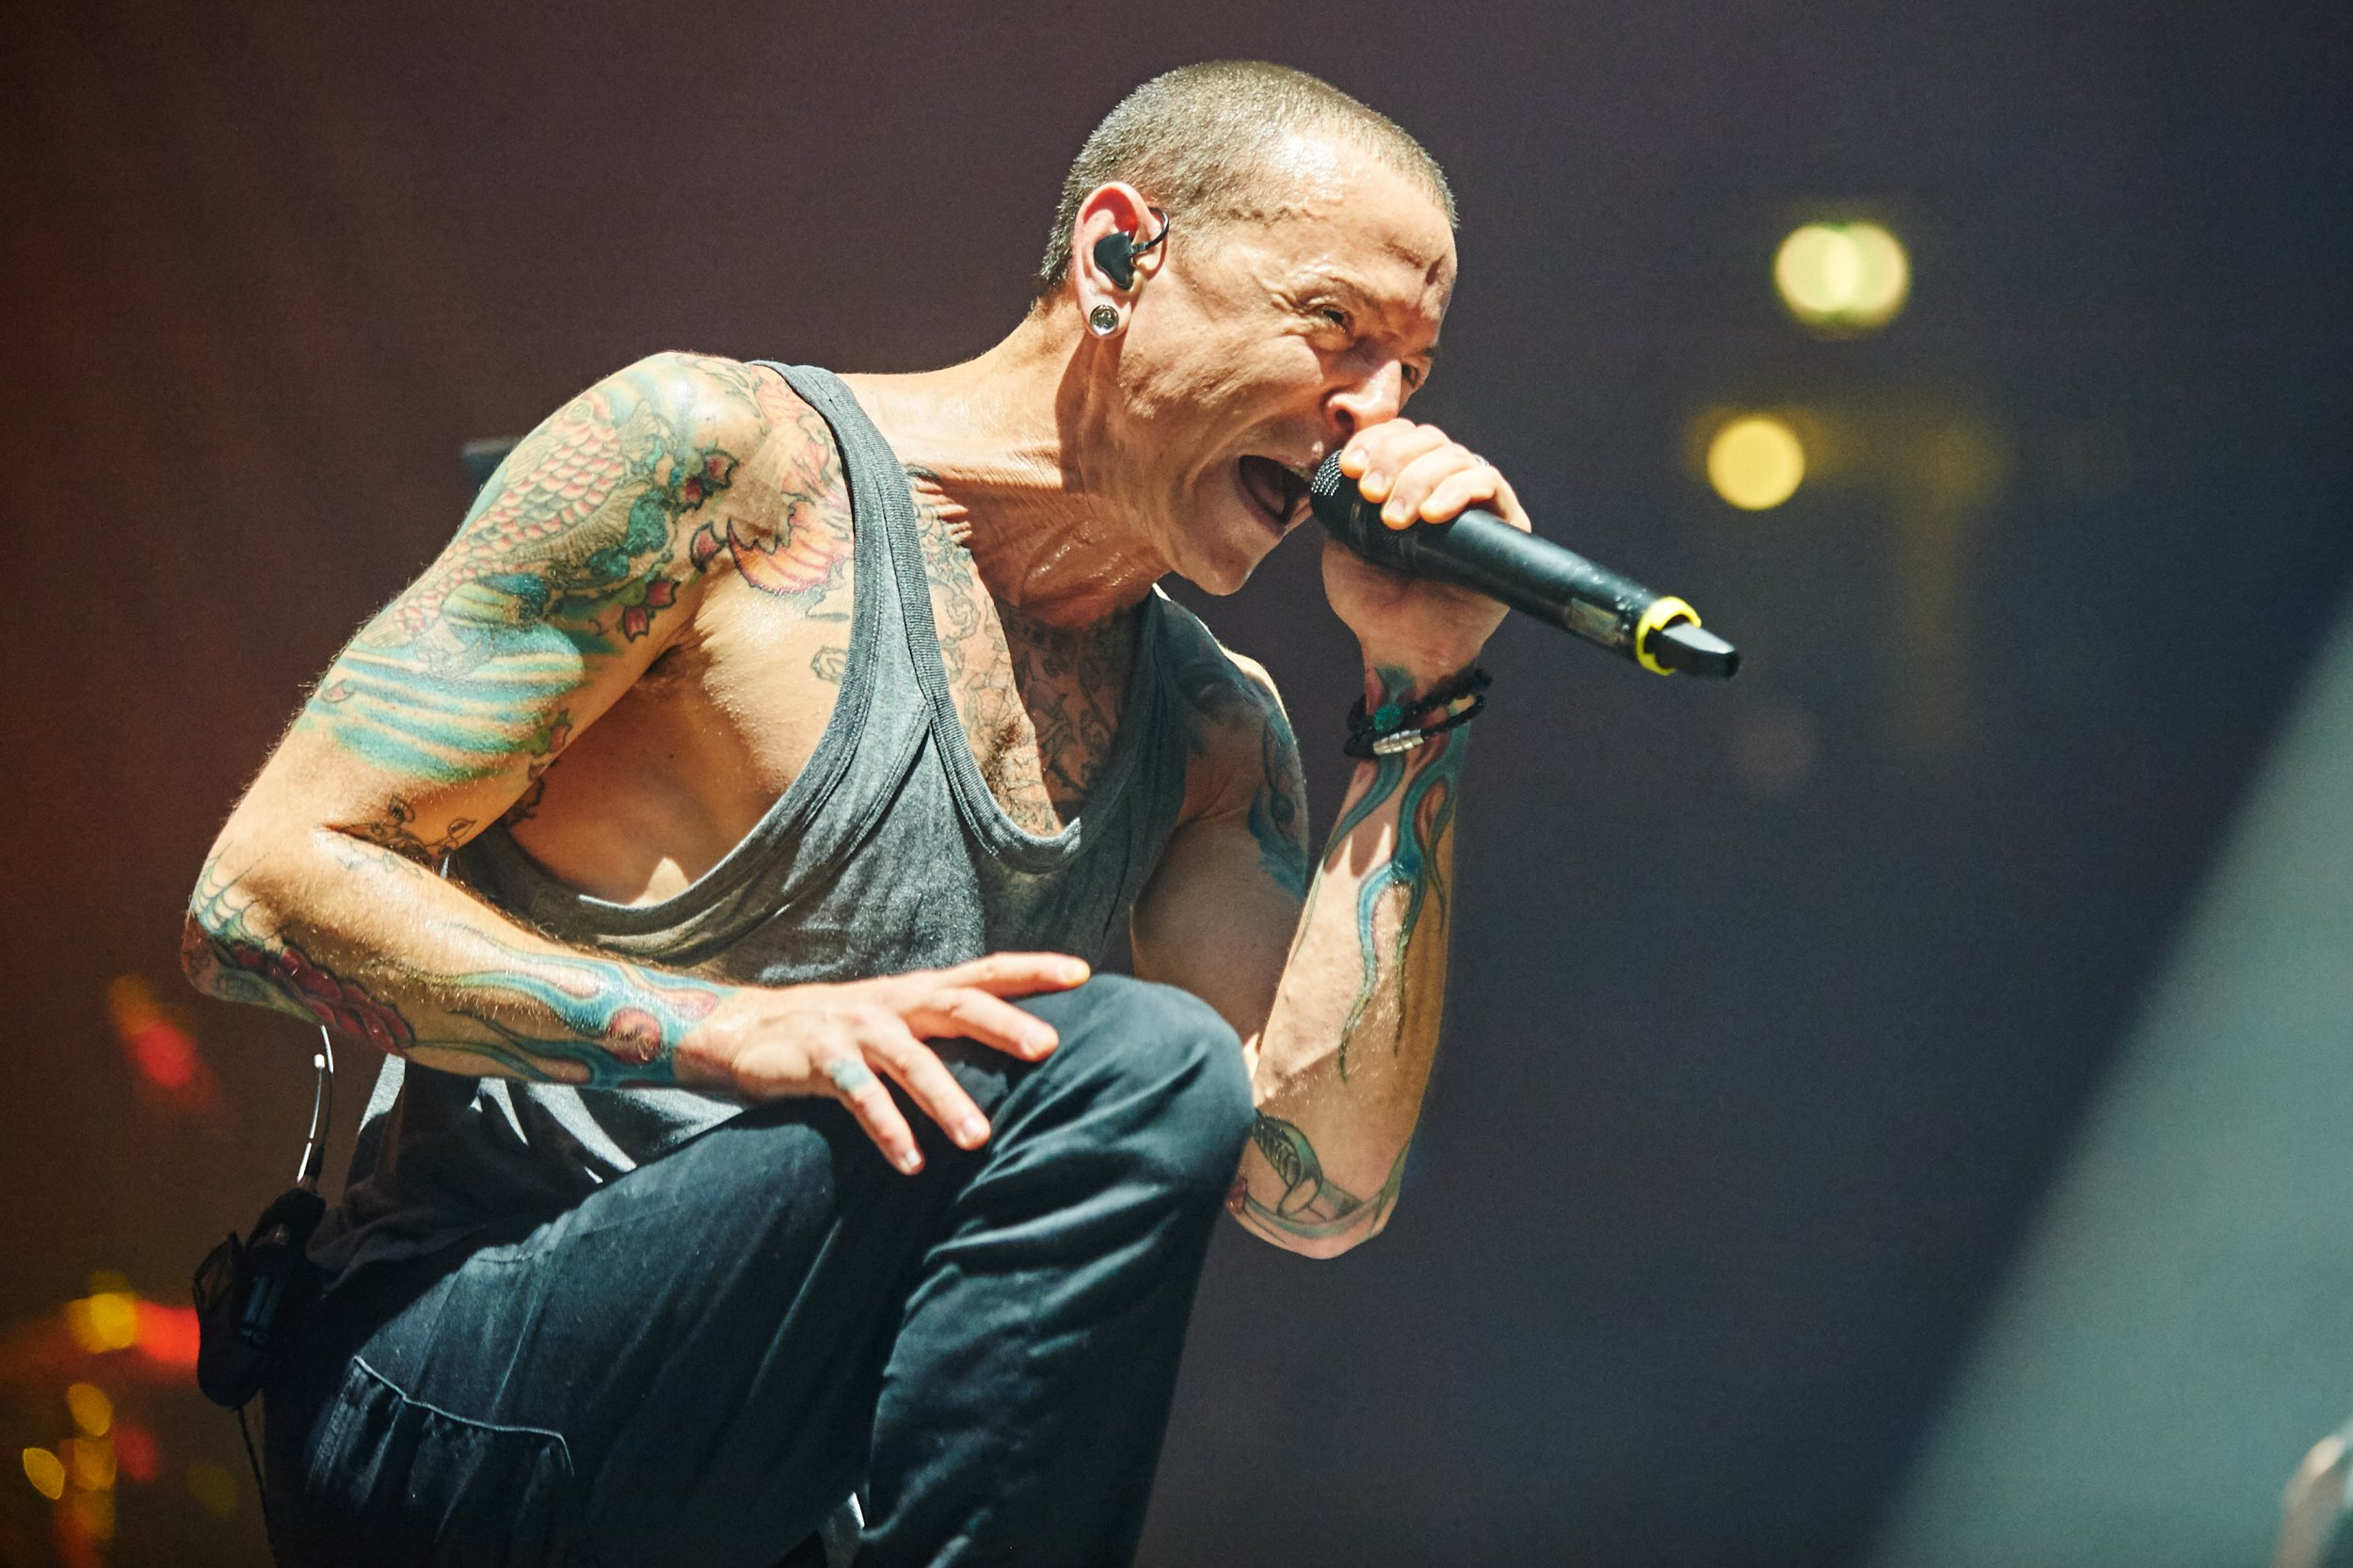 Linkin Park announce special concert in memory of Chester Bennington